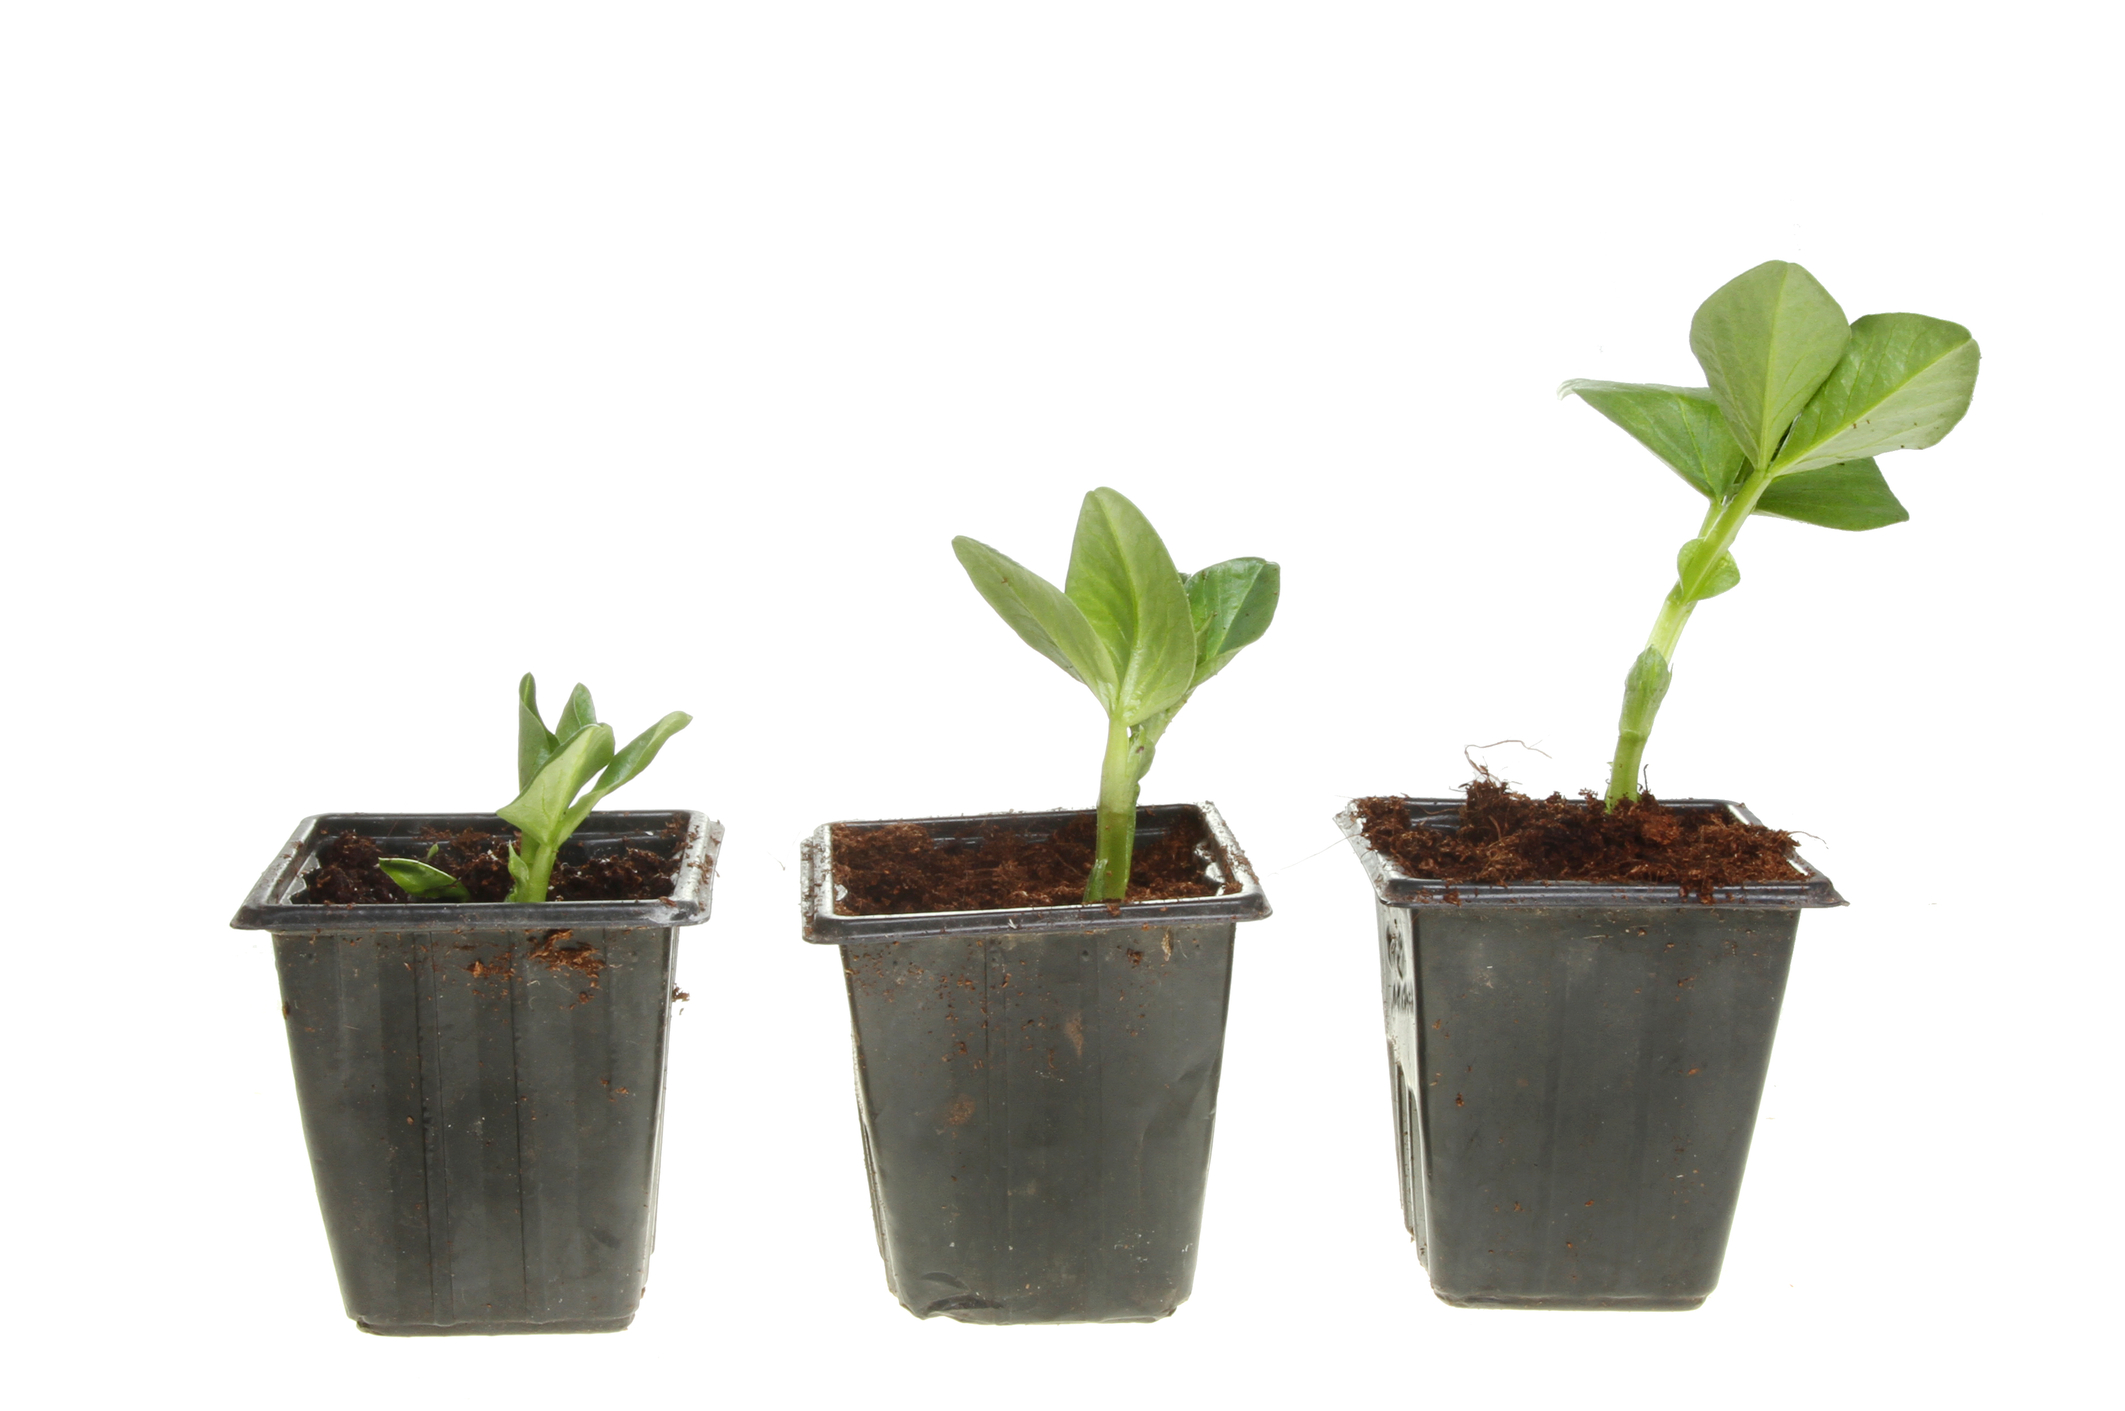 8. See how they grow